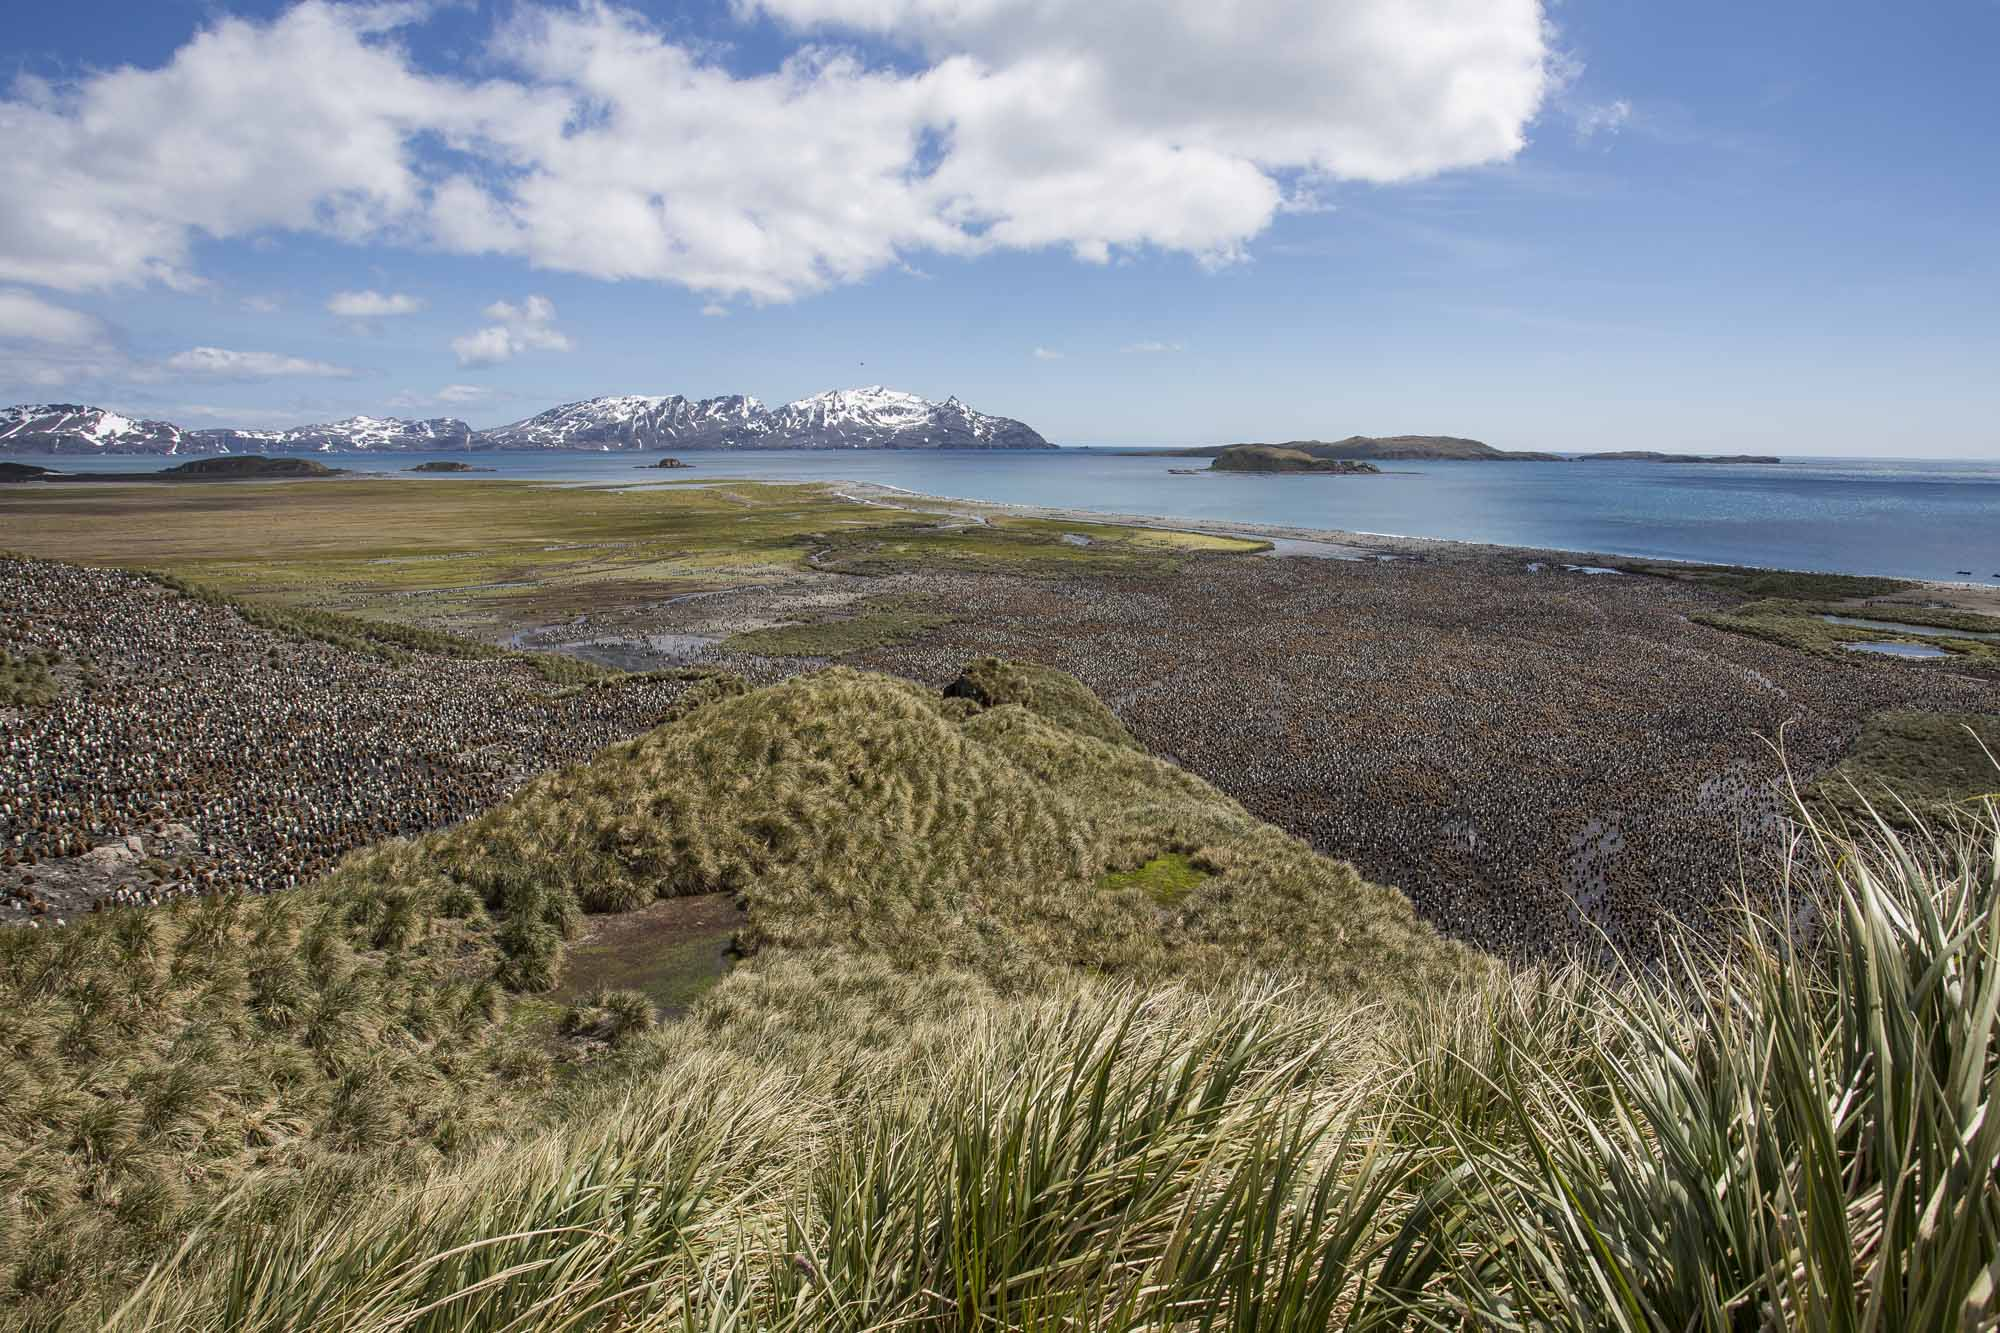 Island-of-Life-Restoring-and-Reclaiming-One-of-Earths-Most-Untamed-Places-photo-by-Ben-Haggar-penguins-below